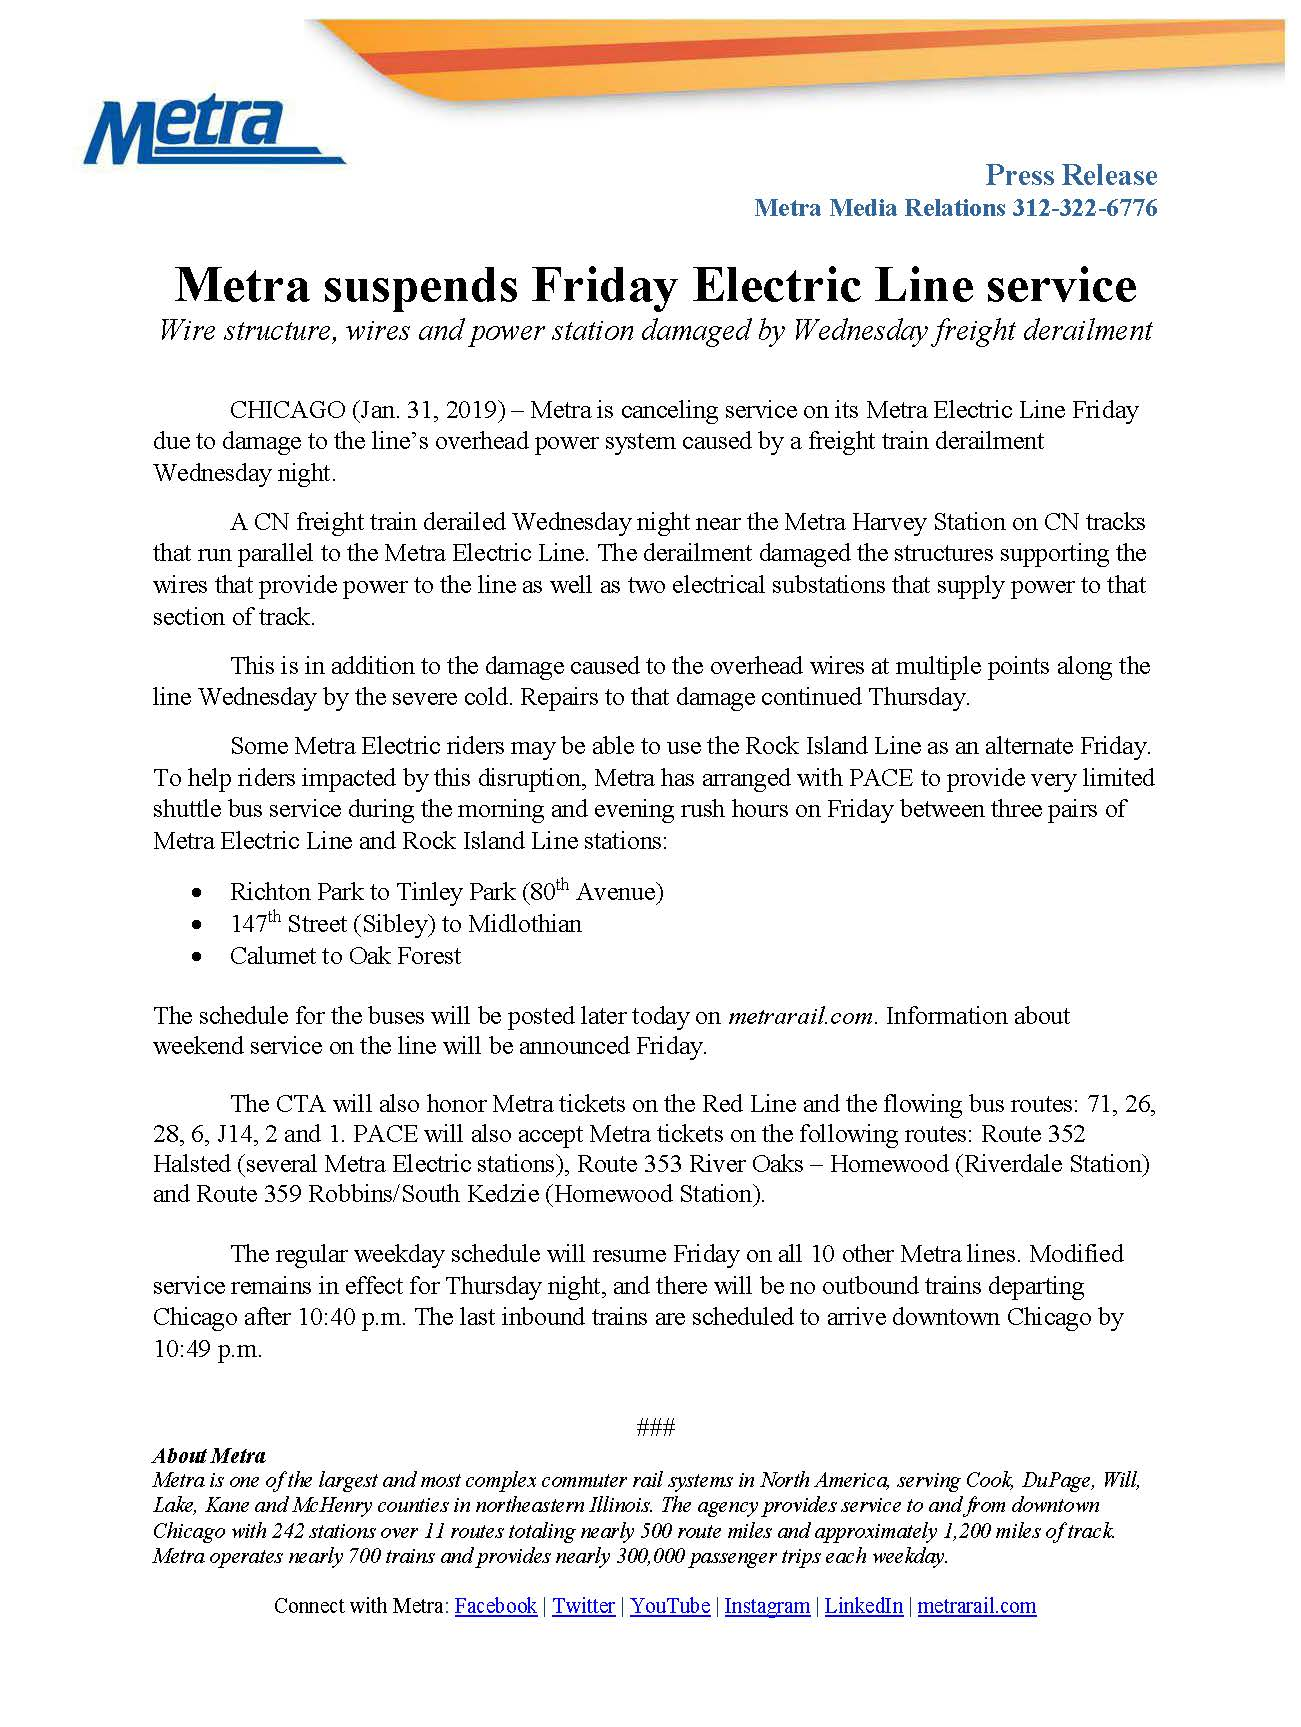 Updated* No Metra Electric Line Service Friday, February 1